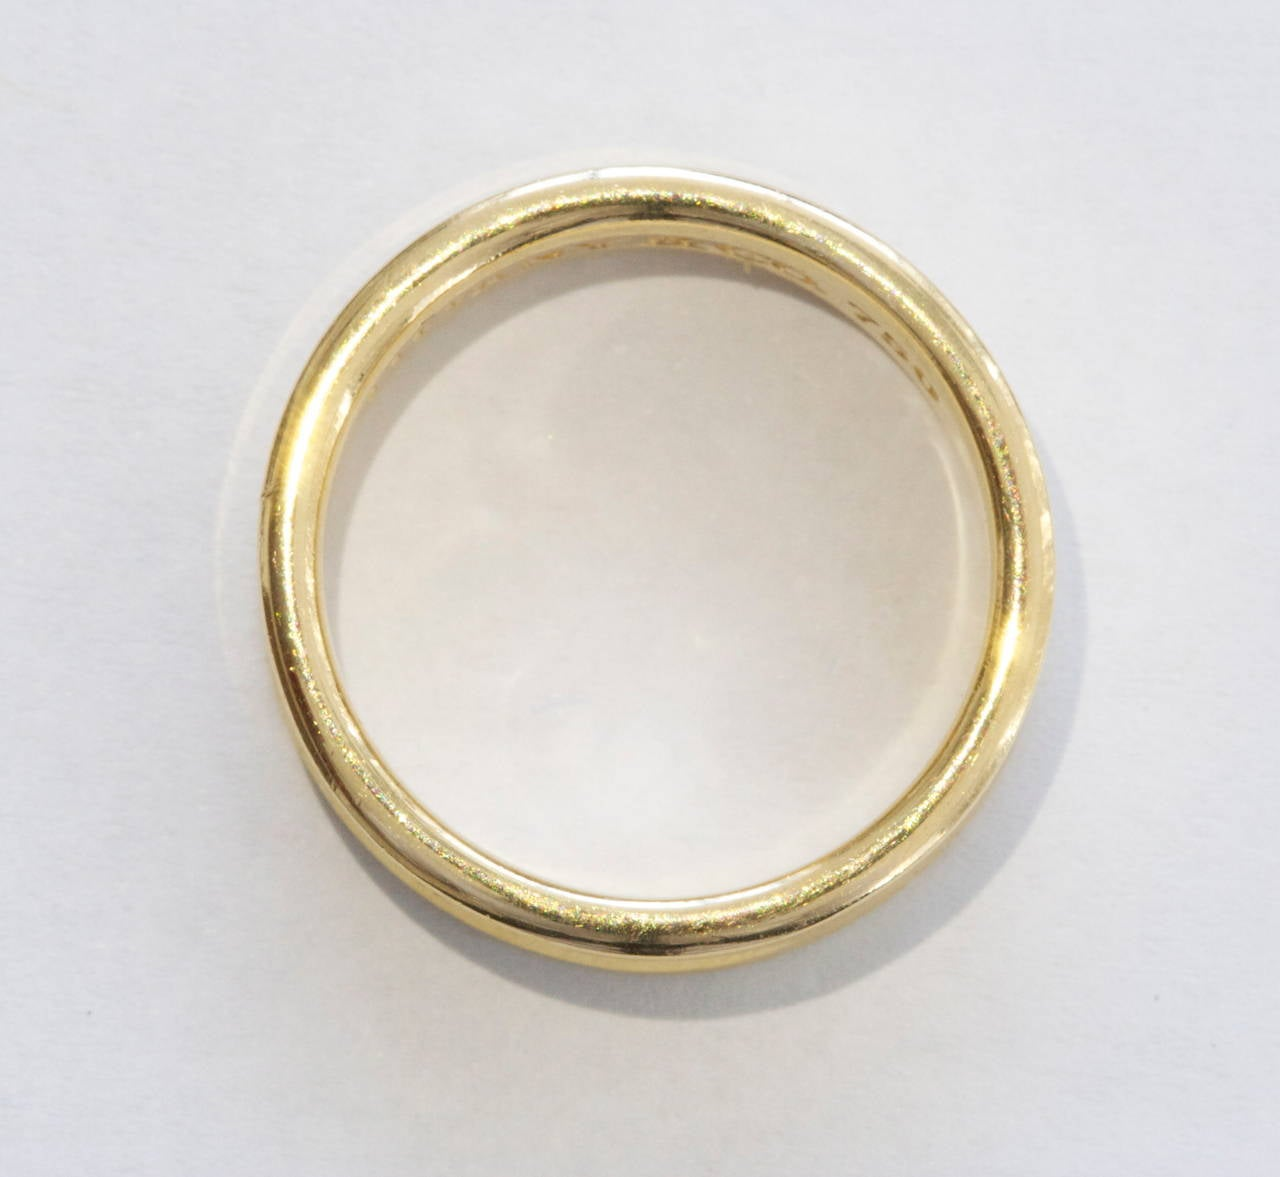 Women's Tiffany & Co. 1837 Gold Wide Band Ring For Sale